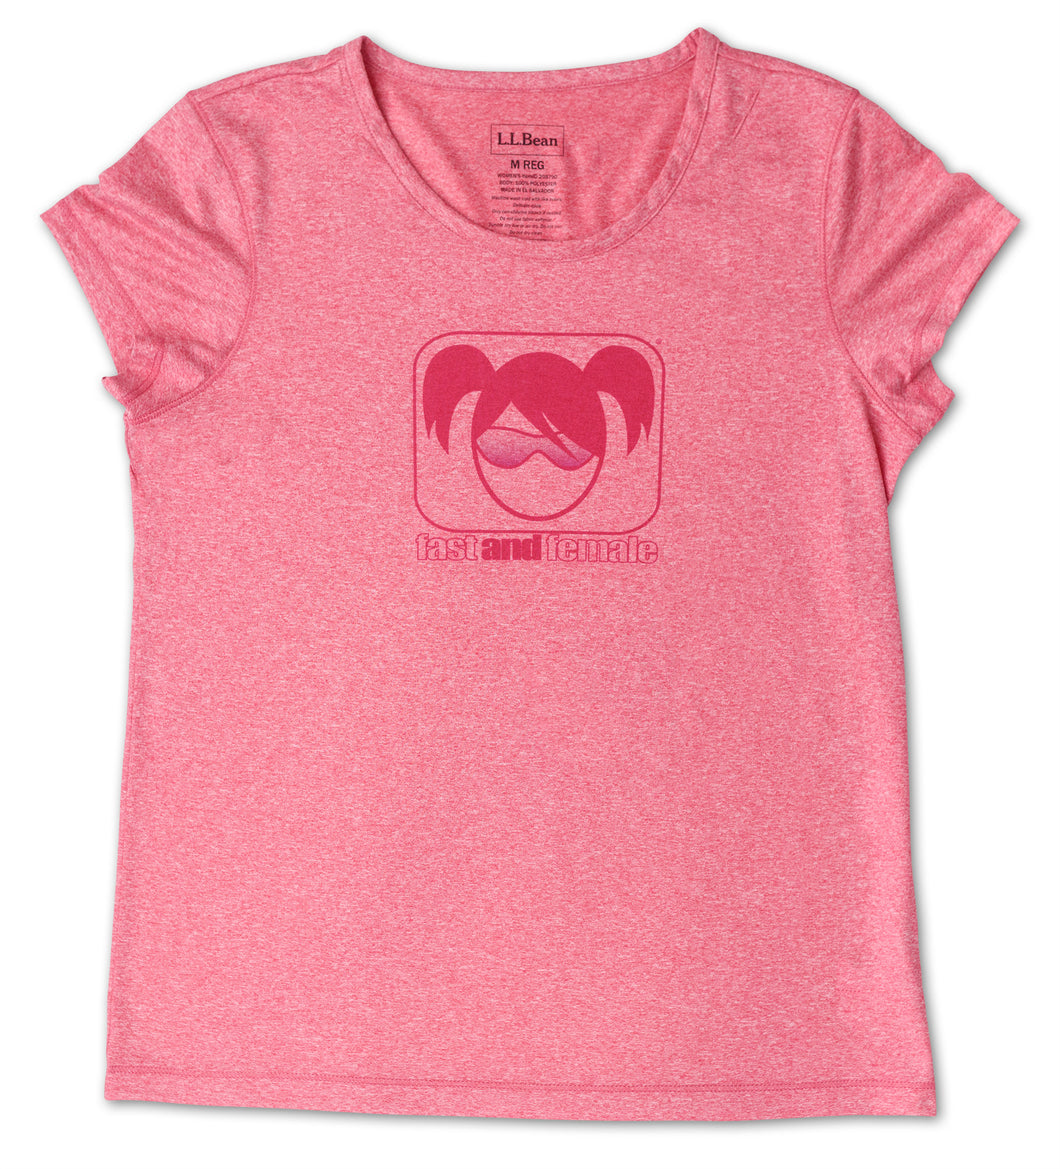 Fast and Female L.L.Bean Tech Tee, Pink -- SALE!